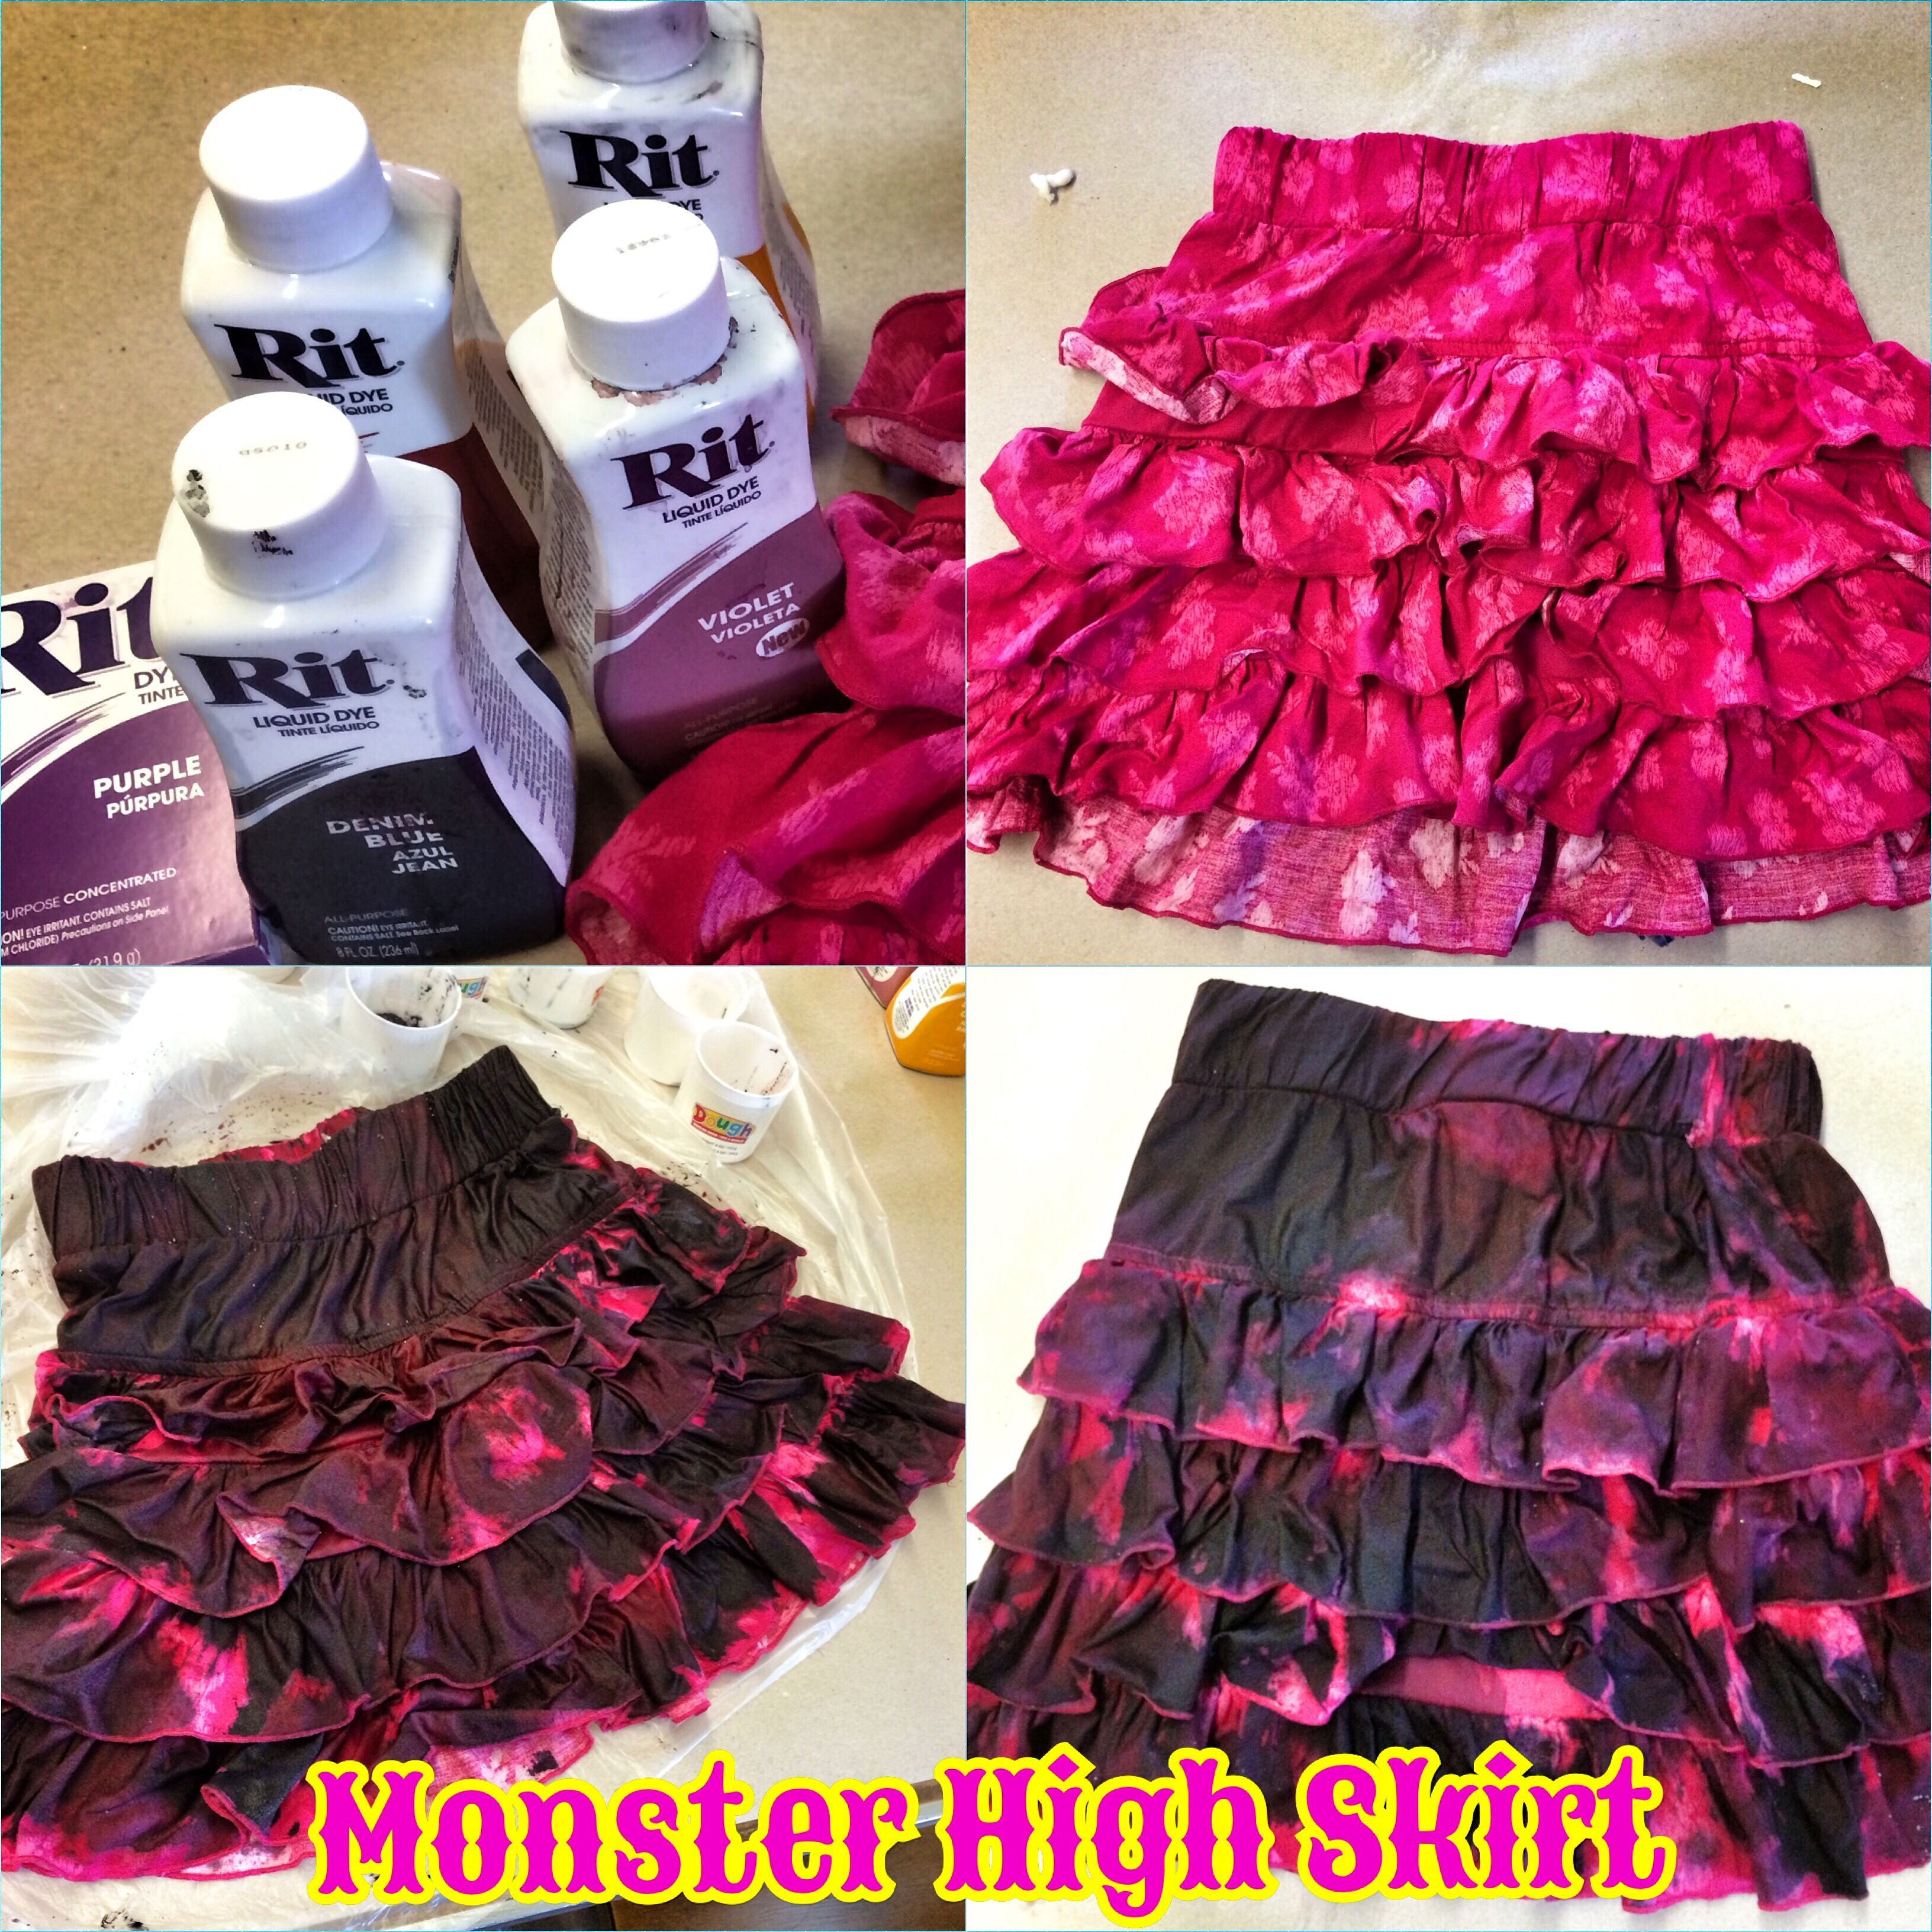 How to make fabric dye - Monster High Skirt Rit Fabric Dye Clothing Dyeing Make A Replica Of Your Monster